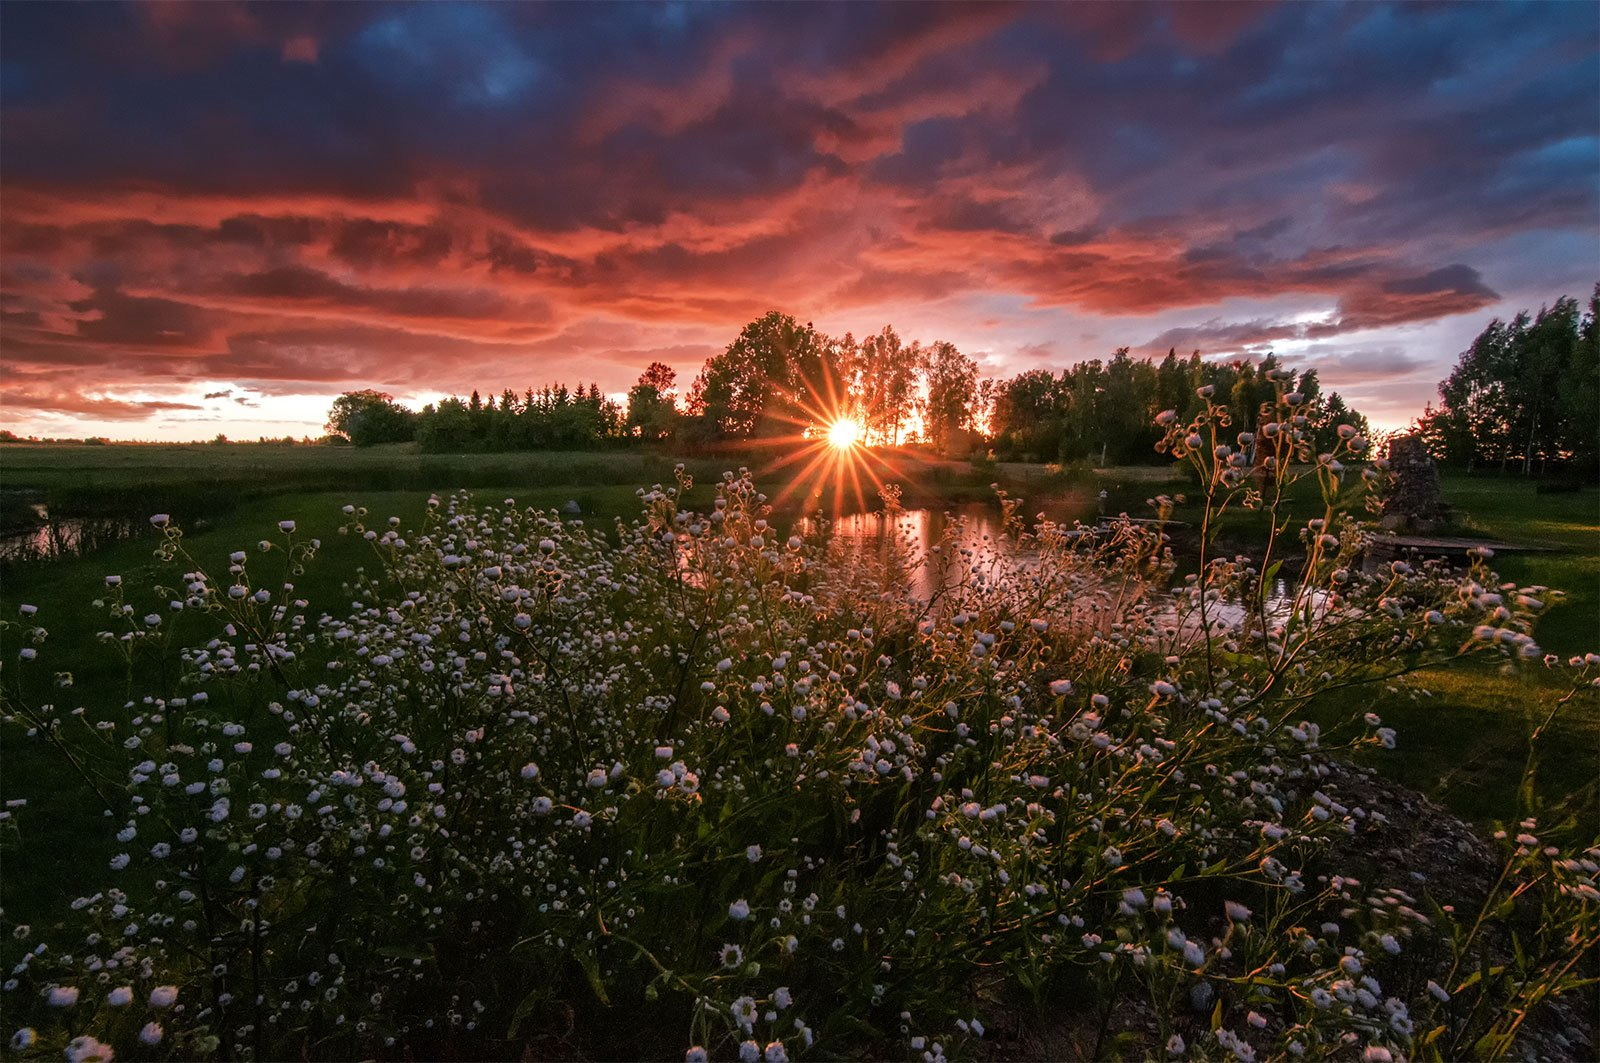 sunset, summer, flowers,clouds, colors, Daiva Cirtautė